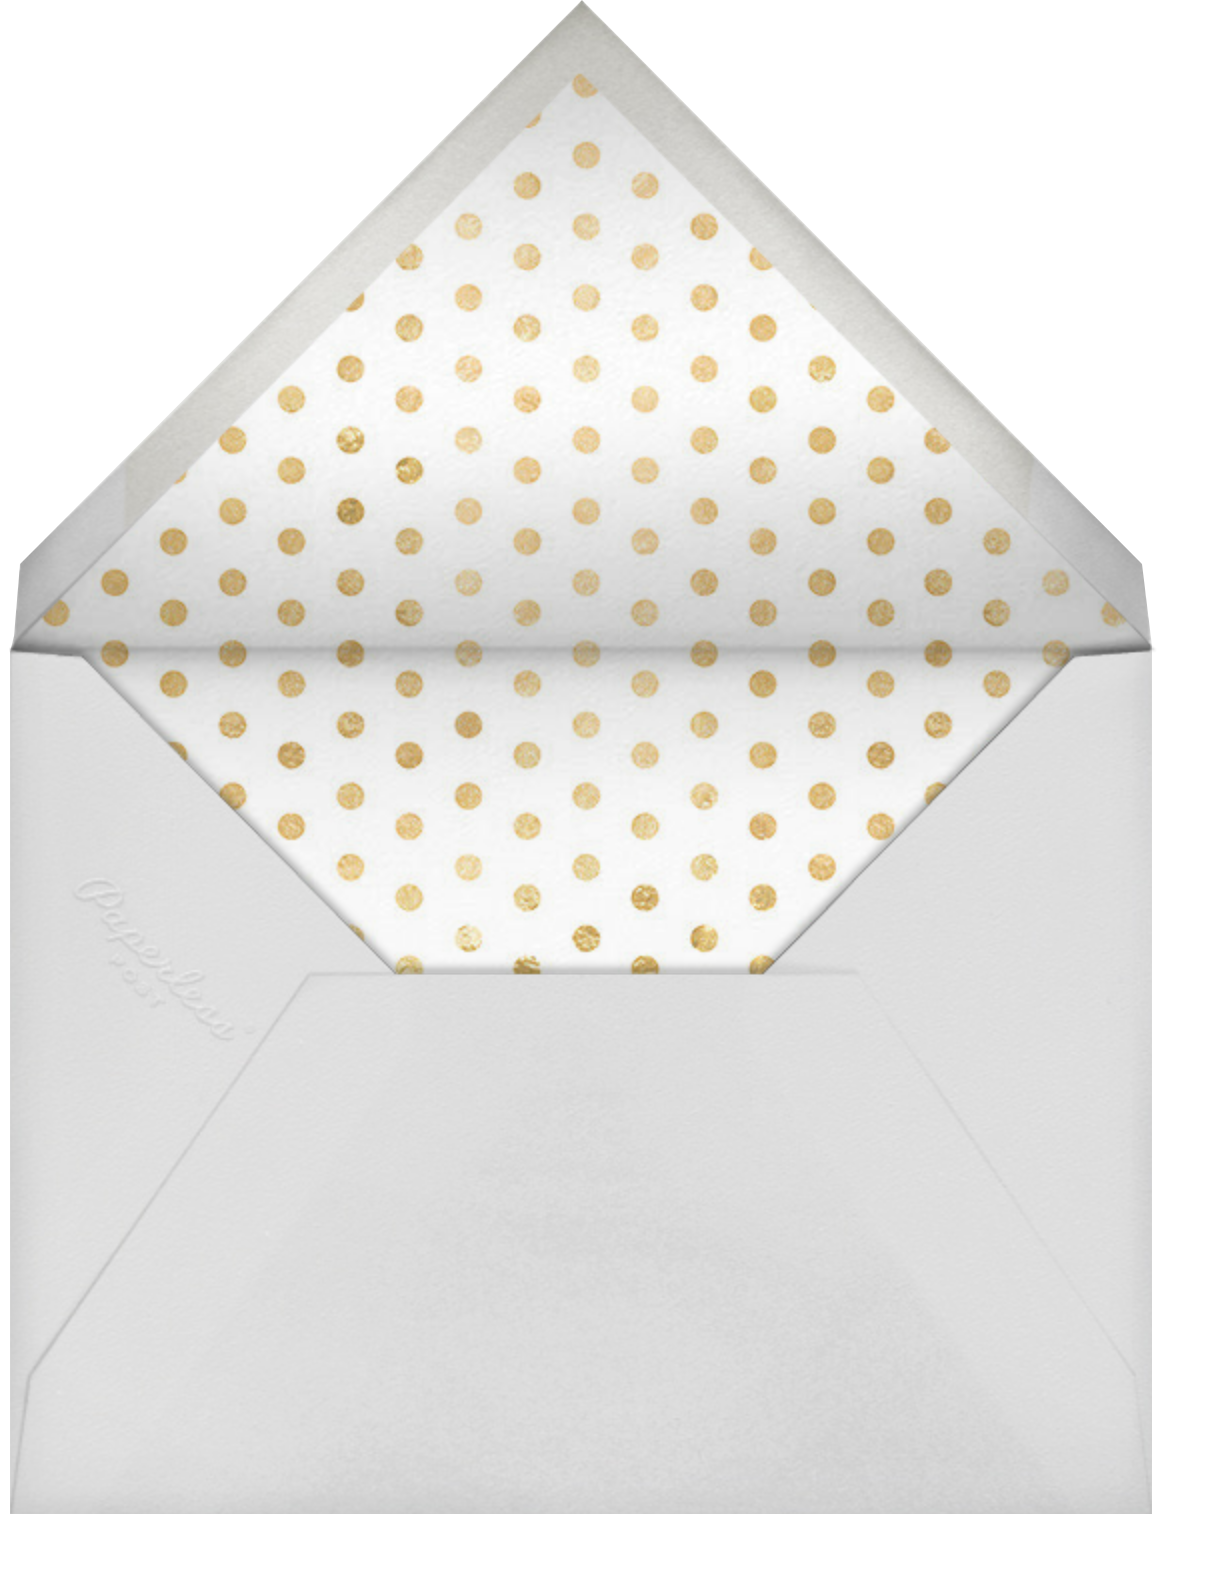 Champagne Tower - Deep - Rifle Paper Co. - Envelope